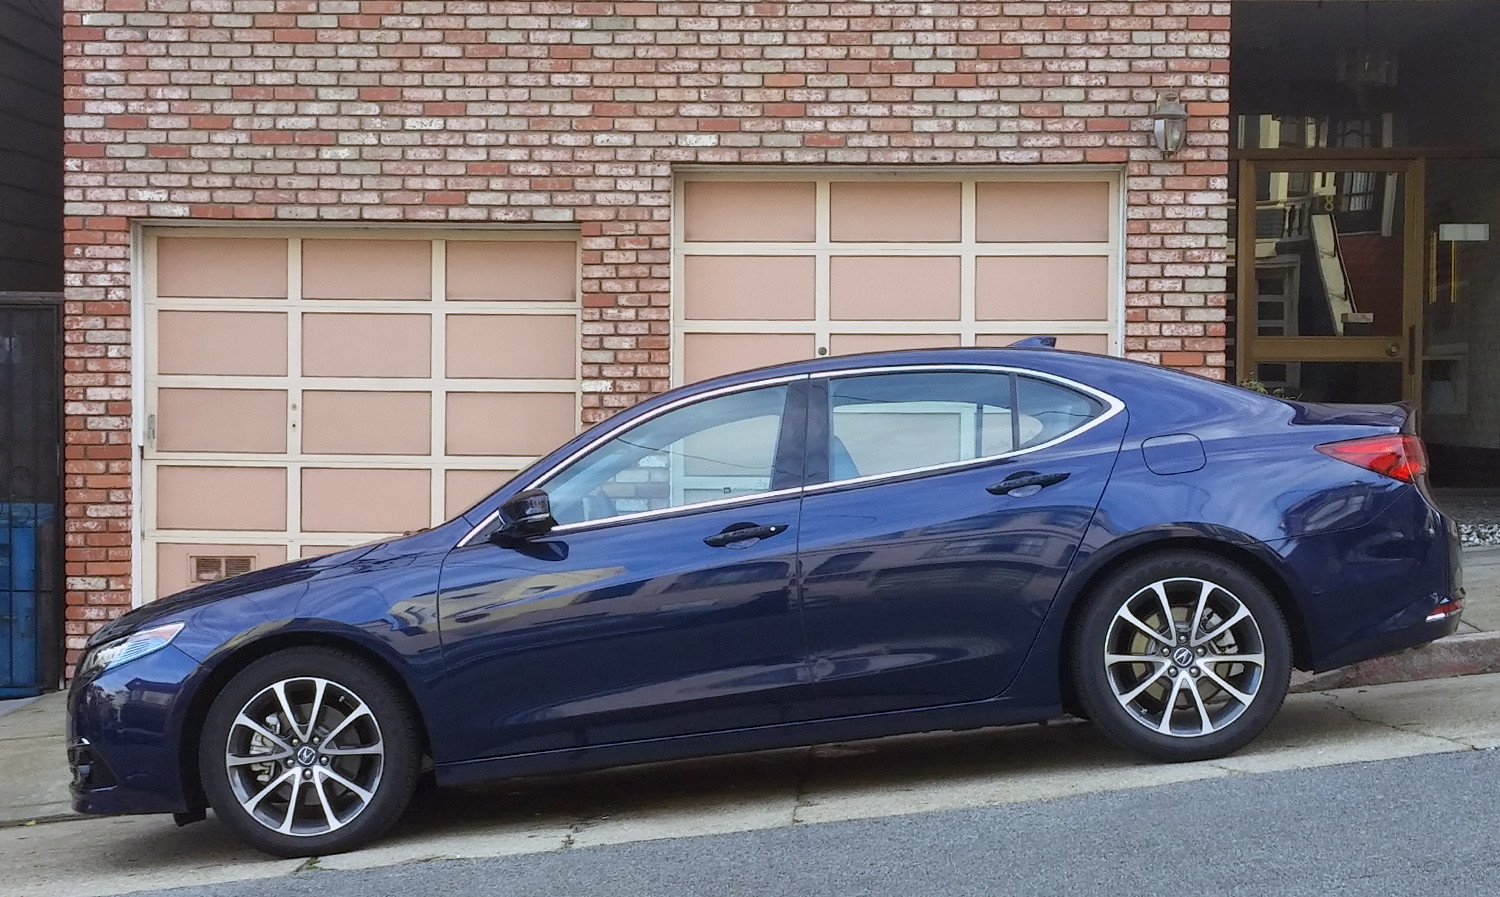 acura tlx 2015 blue. the midsized sedan market is loaded with good choices head up price scale as acura has tlx and a car will need compelling reason for tlx 2015 blue